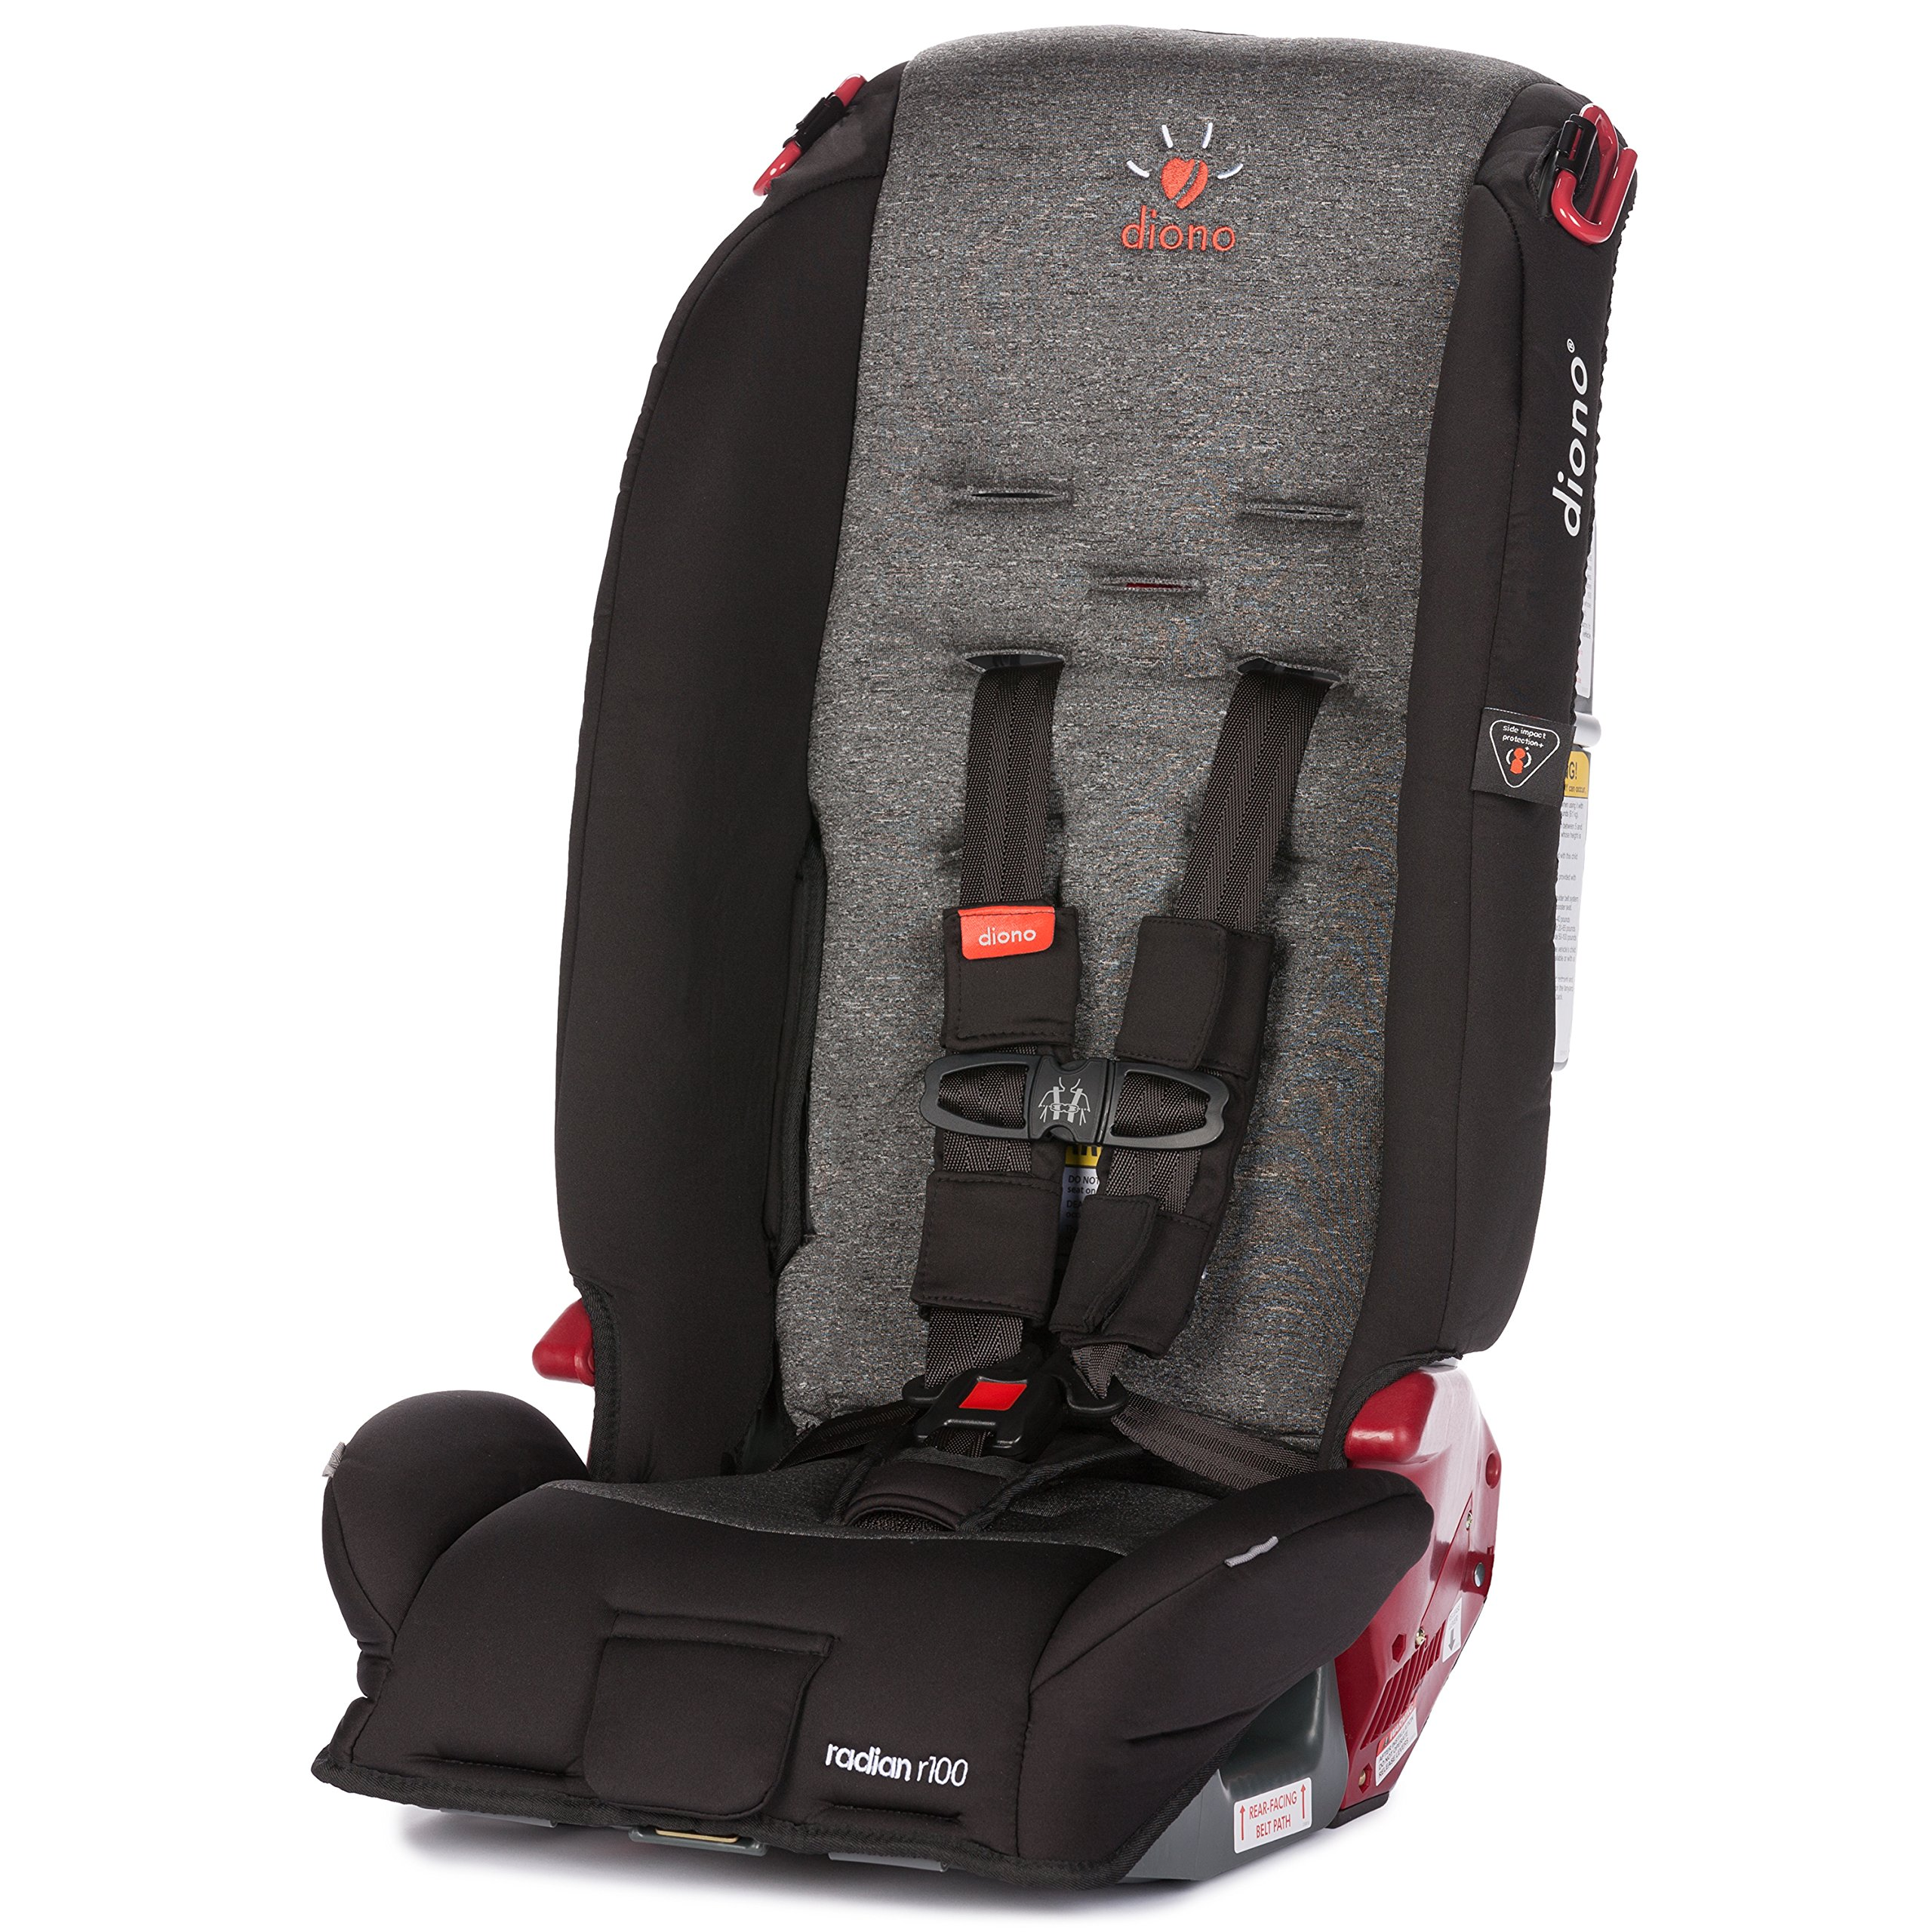 Amazon.com : Diono Radian R100 All-In-One Convertible Car Seat ...